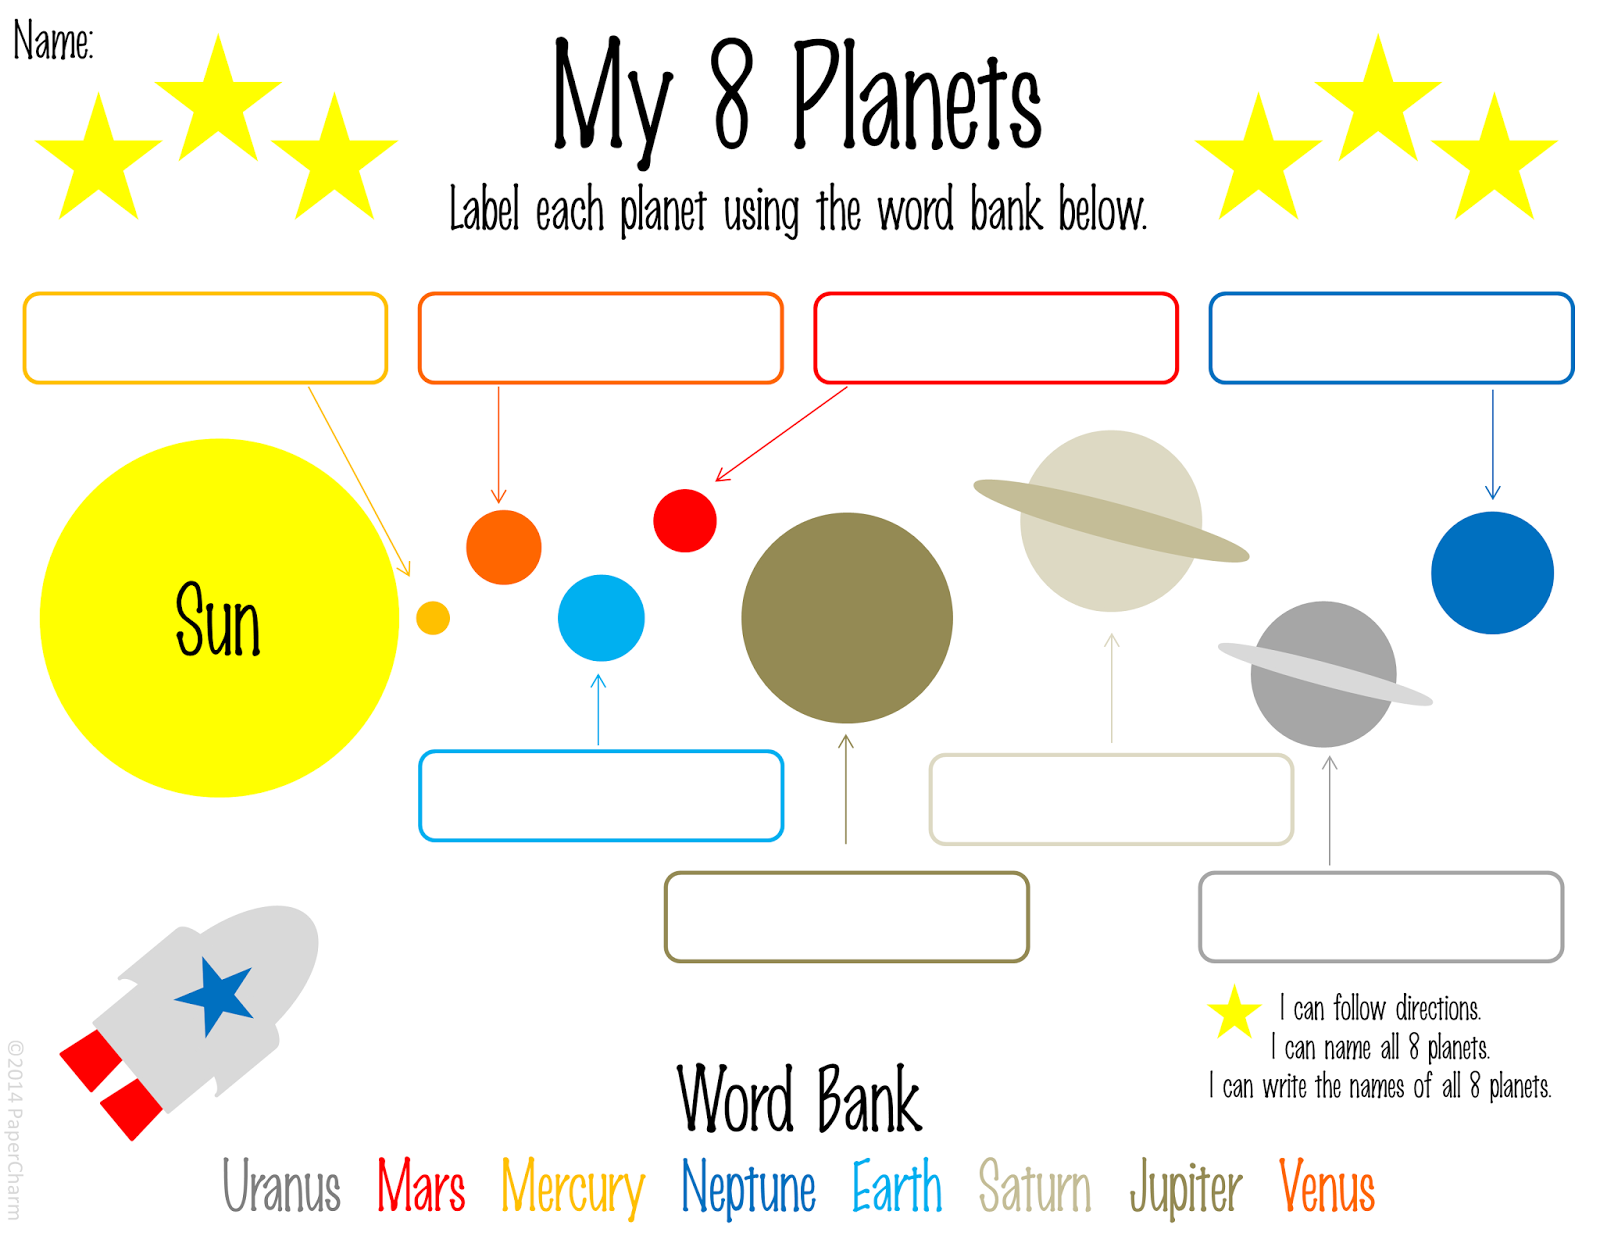 Worksheets Free Solar System Worksheets papercharm free 1st grade planet printables click here to download the pdf i ask that these are not sold in any manner you may link this post on your own website if would like include them